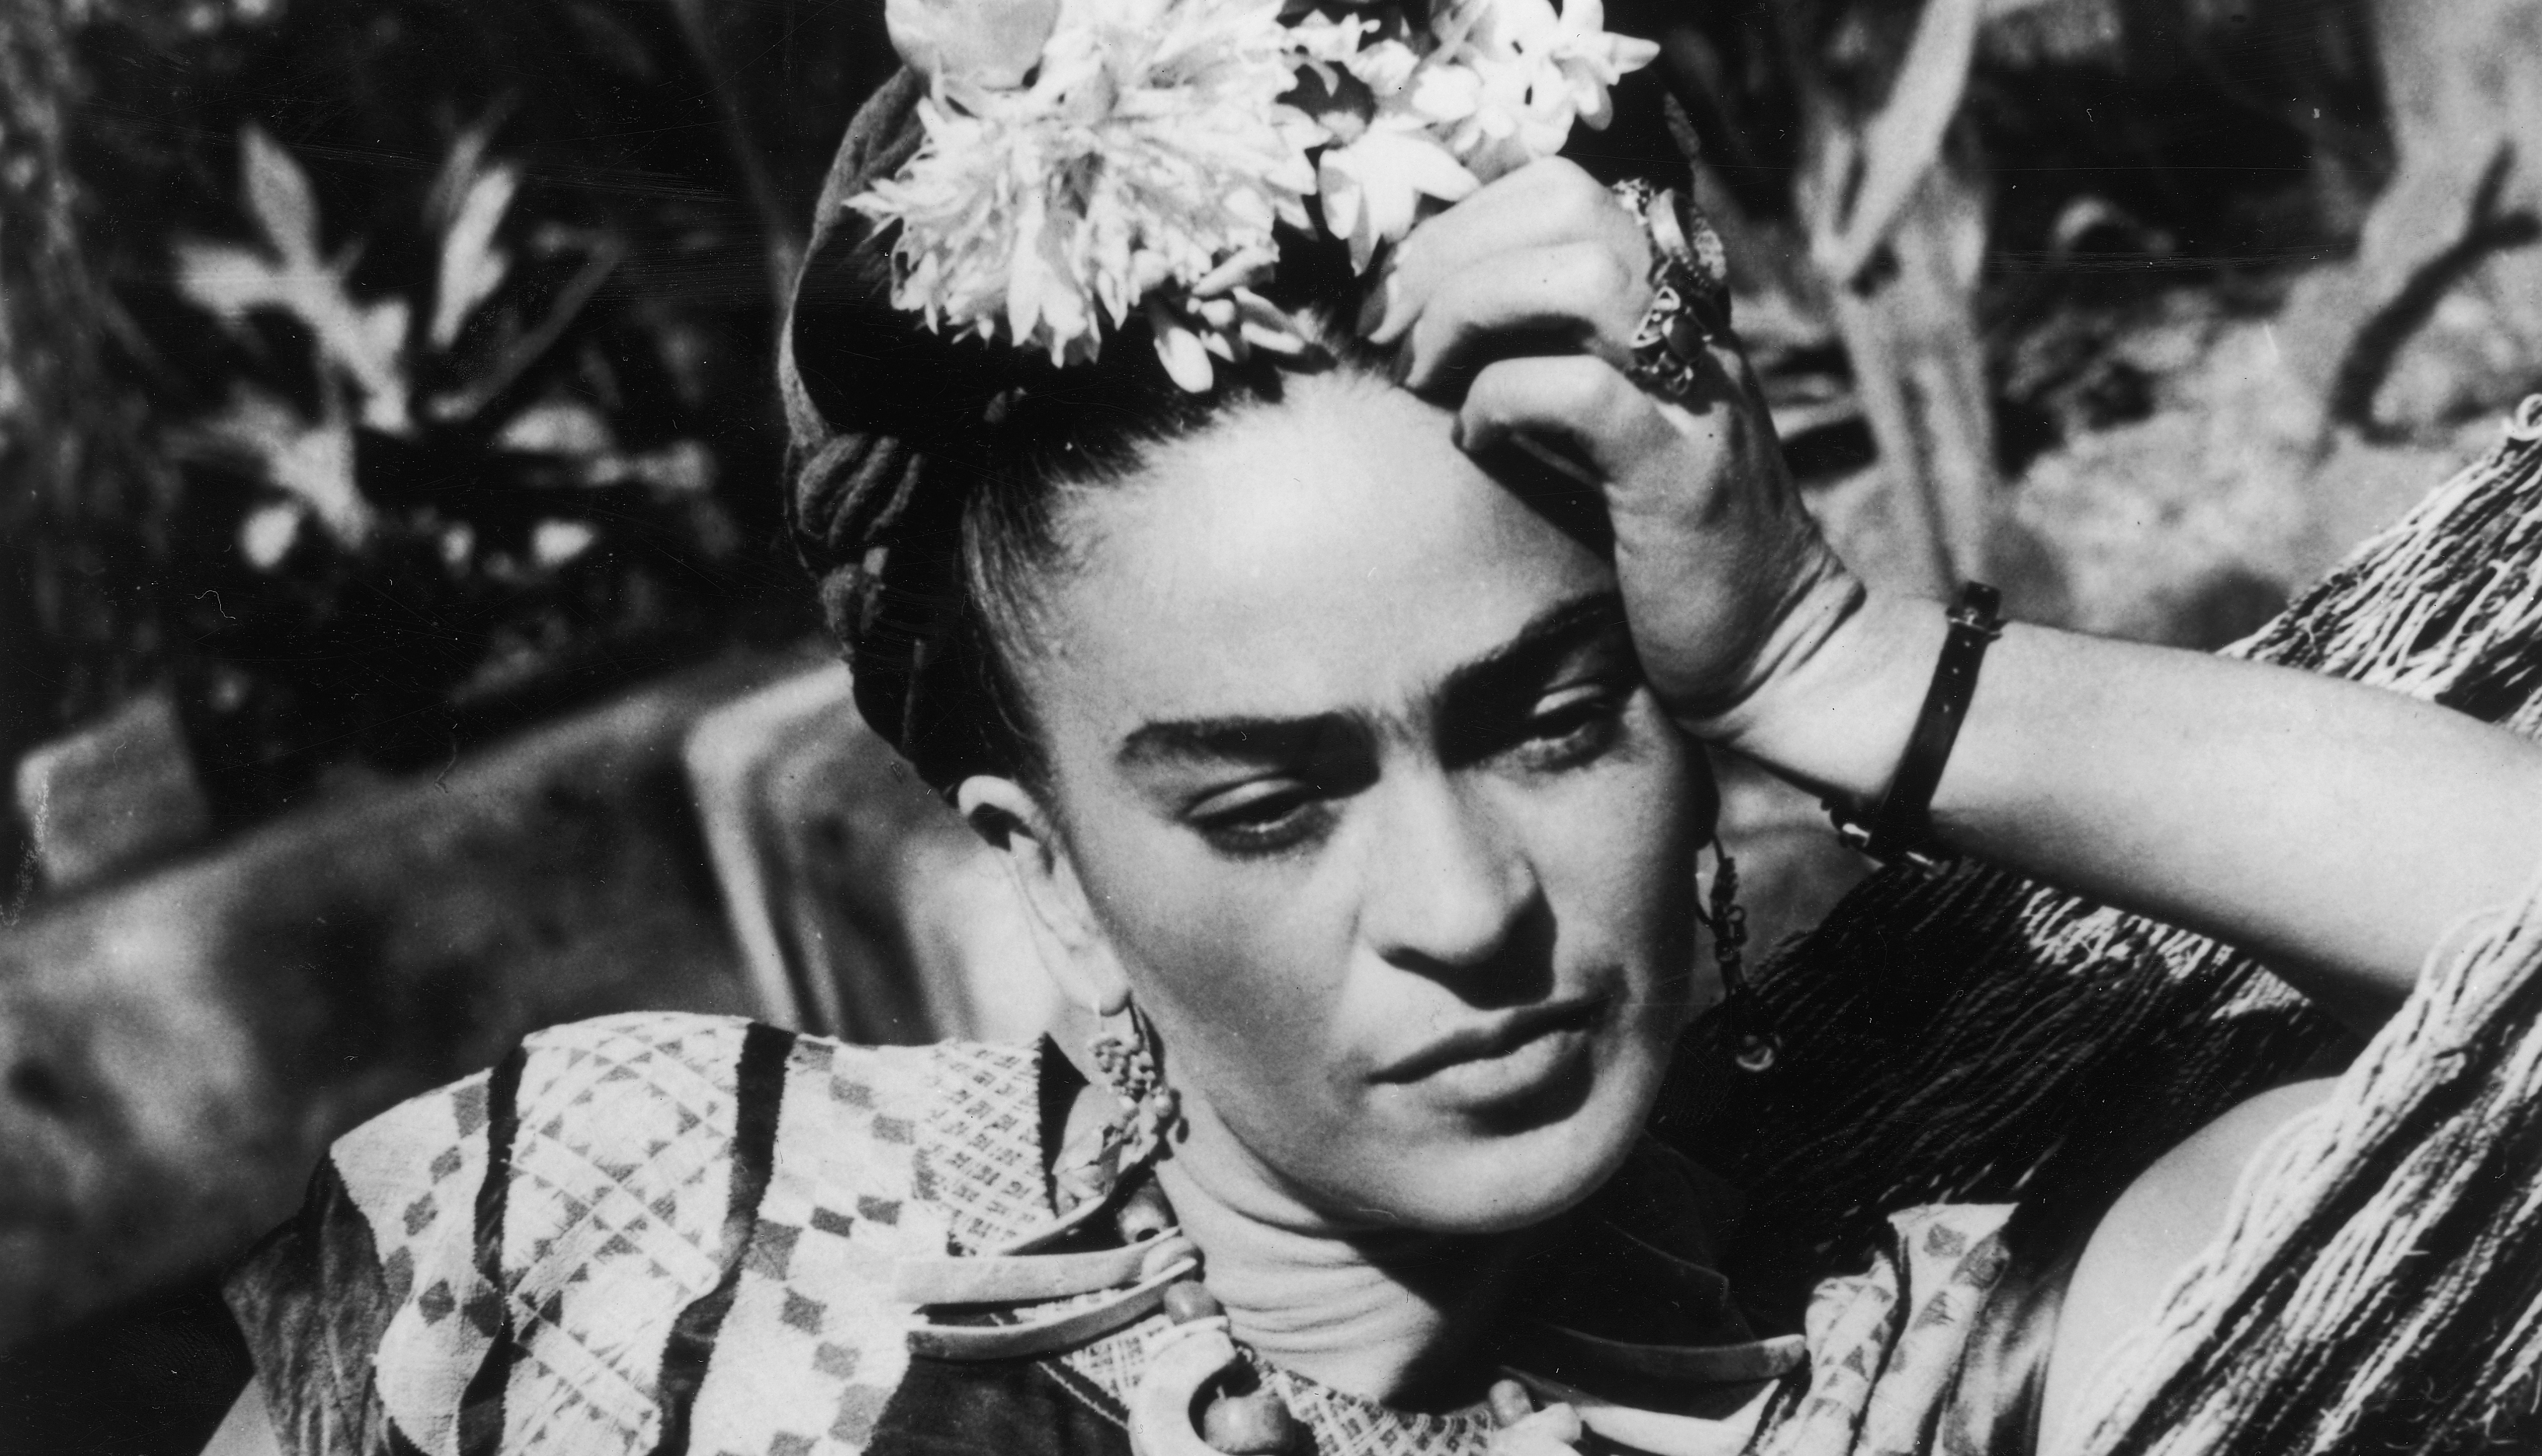 The Largest Frida Kahlo Art Exhibit in 40 Years Is Coming to Chicago in 2020